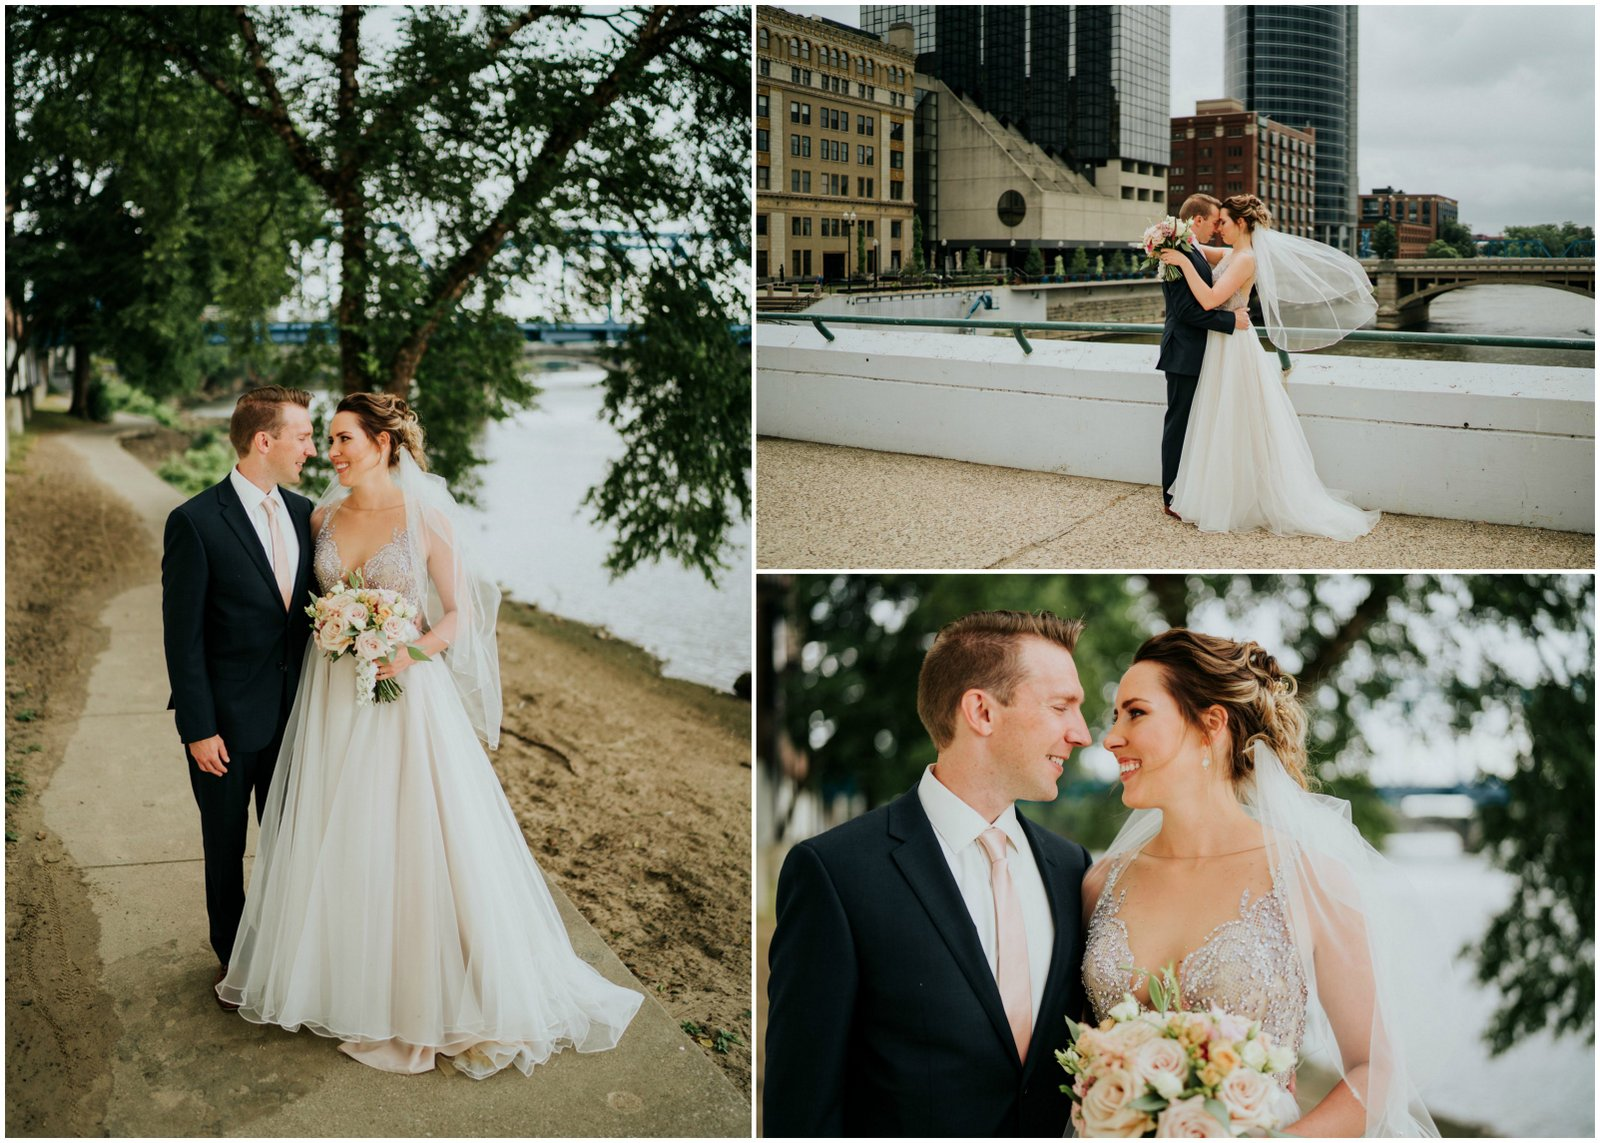 JS Weddings and Events, a Grand Rapids Wedding Planner and Floral Designer. A Moody Summer Romantic Wedding in Downtown Grand Rapids.q